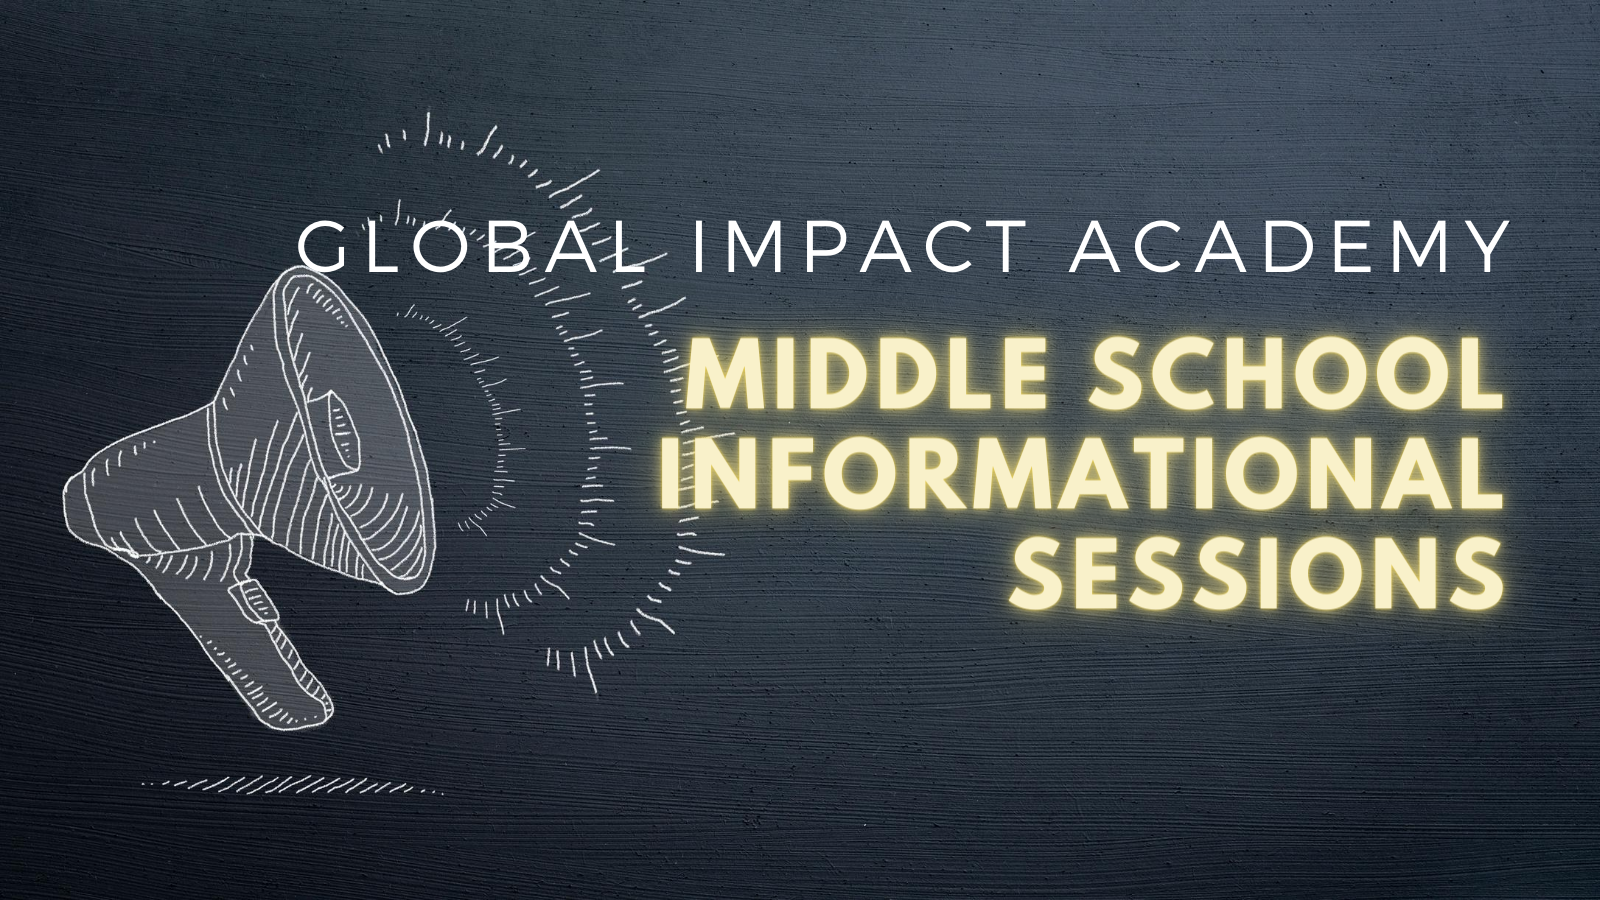 Middle School Informational Sessions